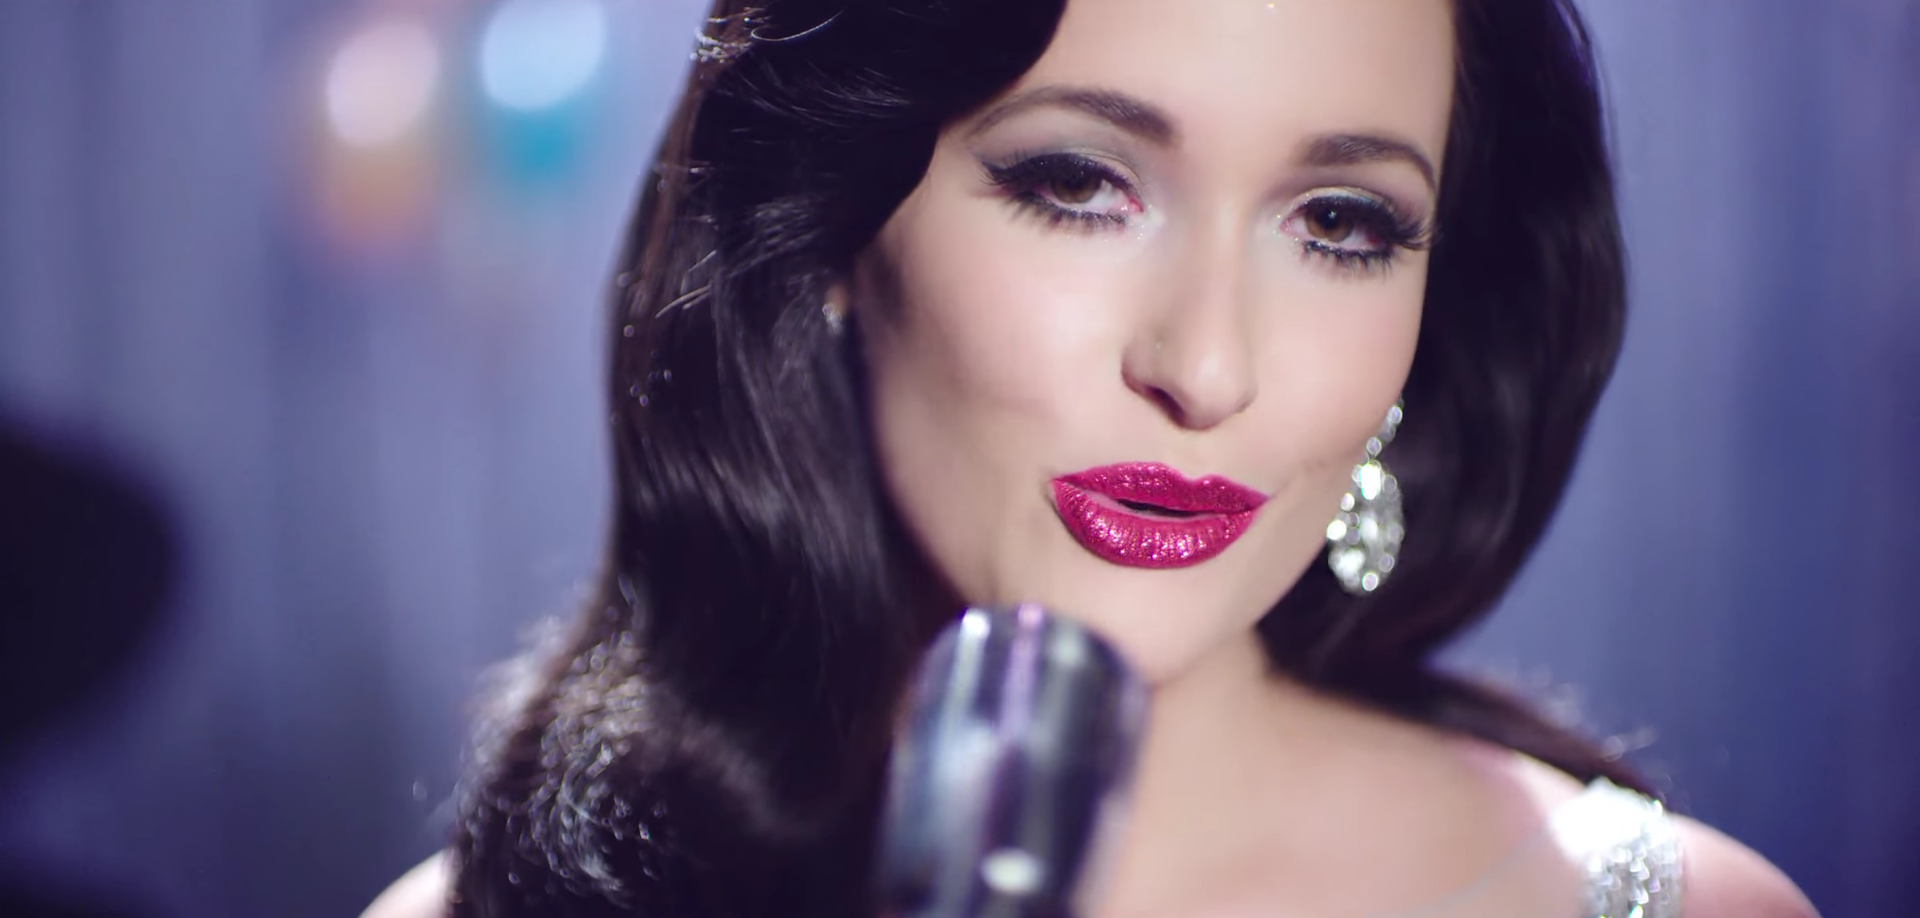 Kacey Musgraves Adds the Warmth to the Holiday Season with New Music